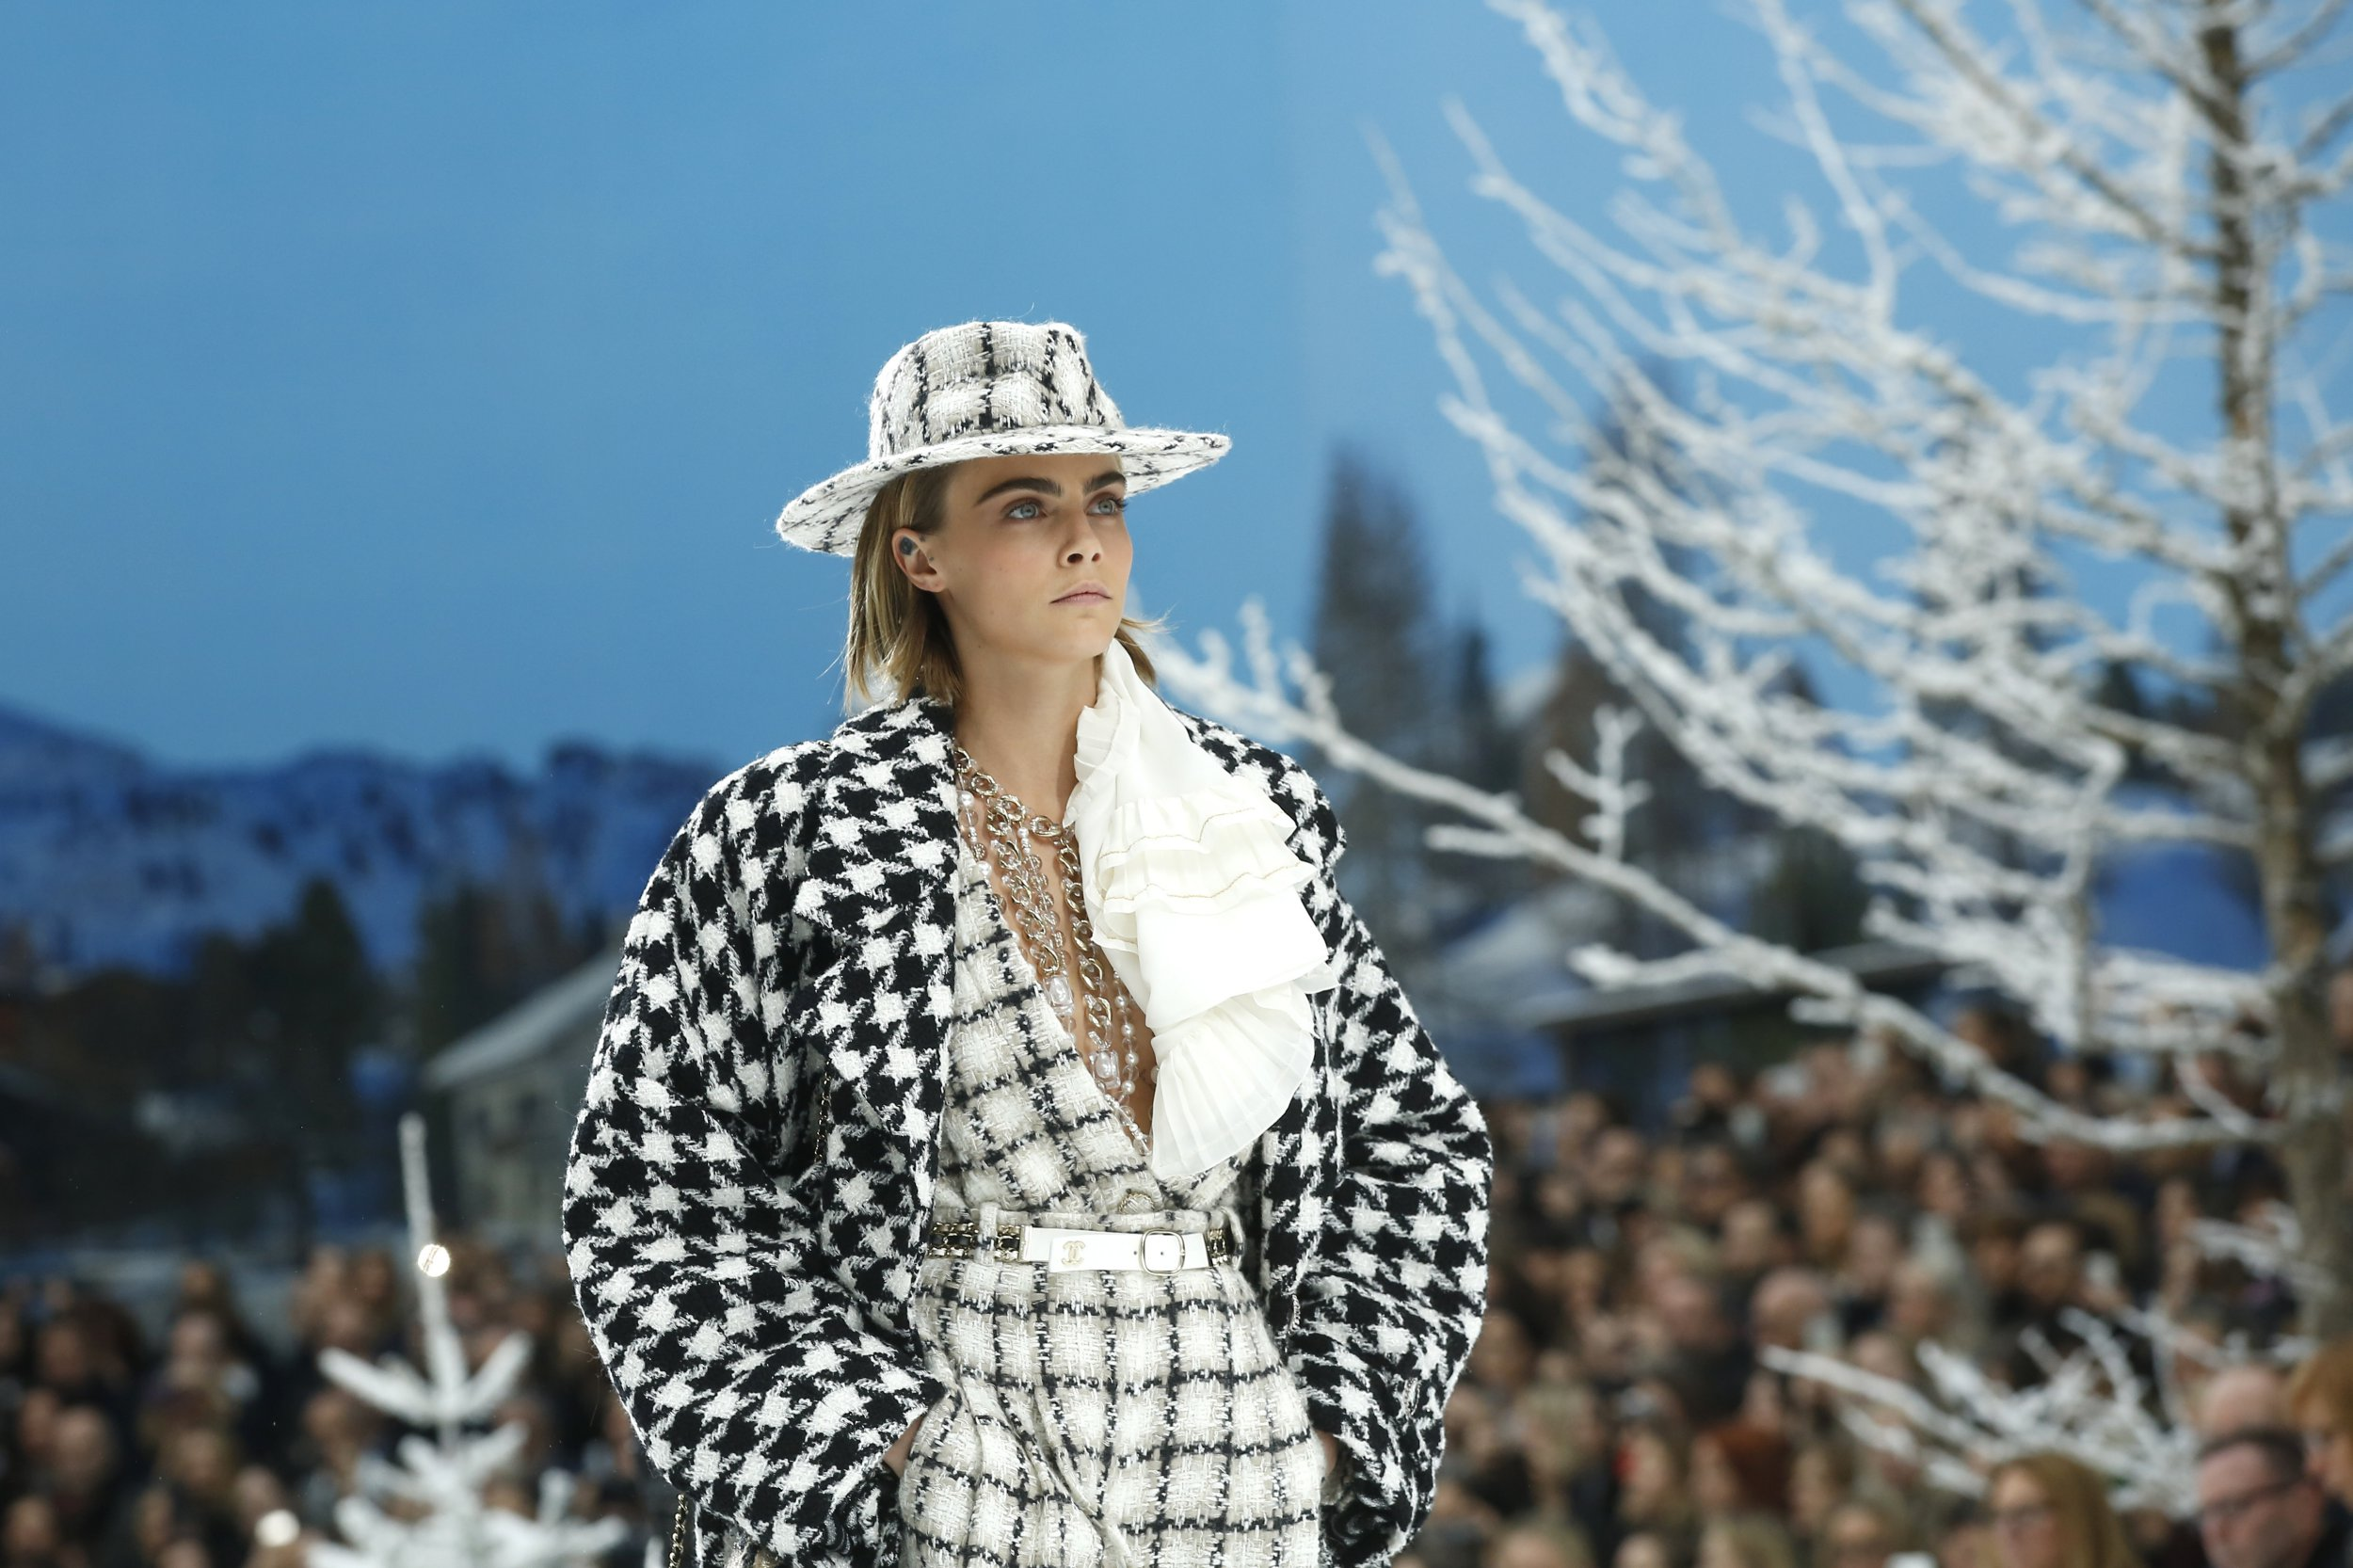 Cara Delevingne makes a return to the catwalk to honour Karl Lagerfeld in Chanel show and she's still got it